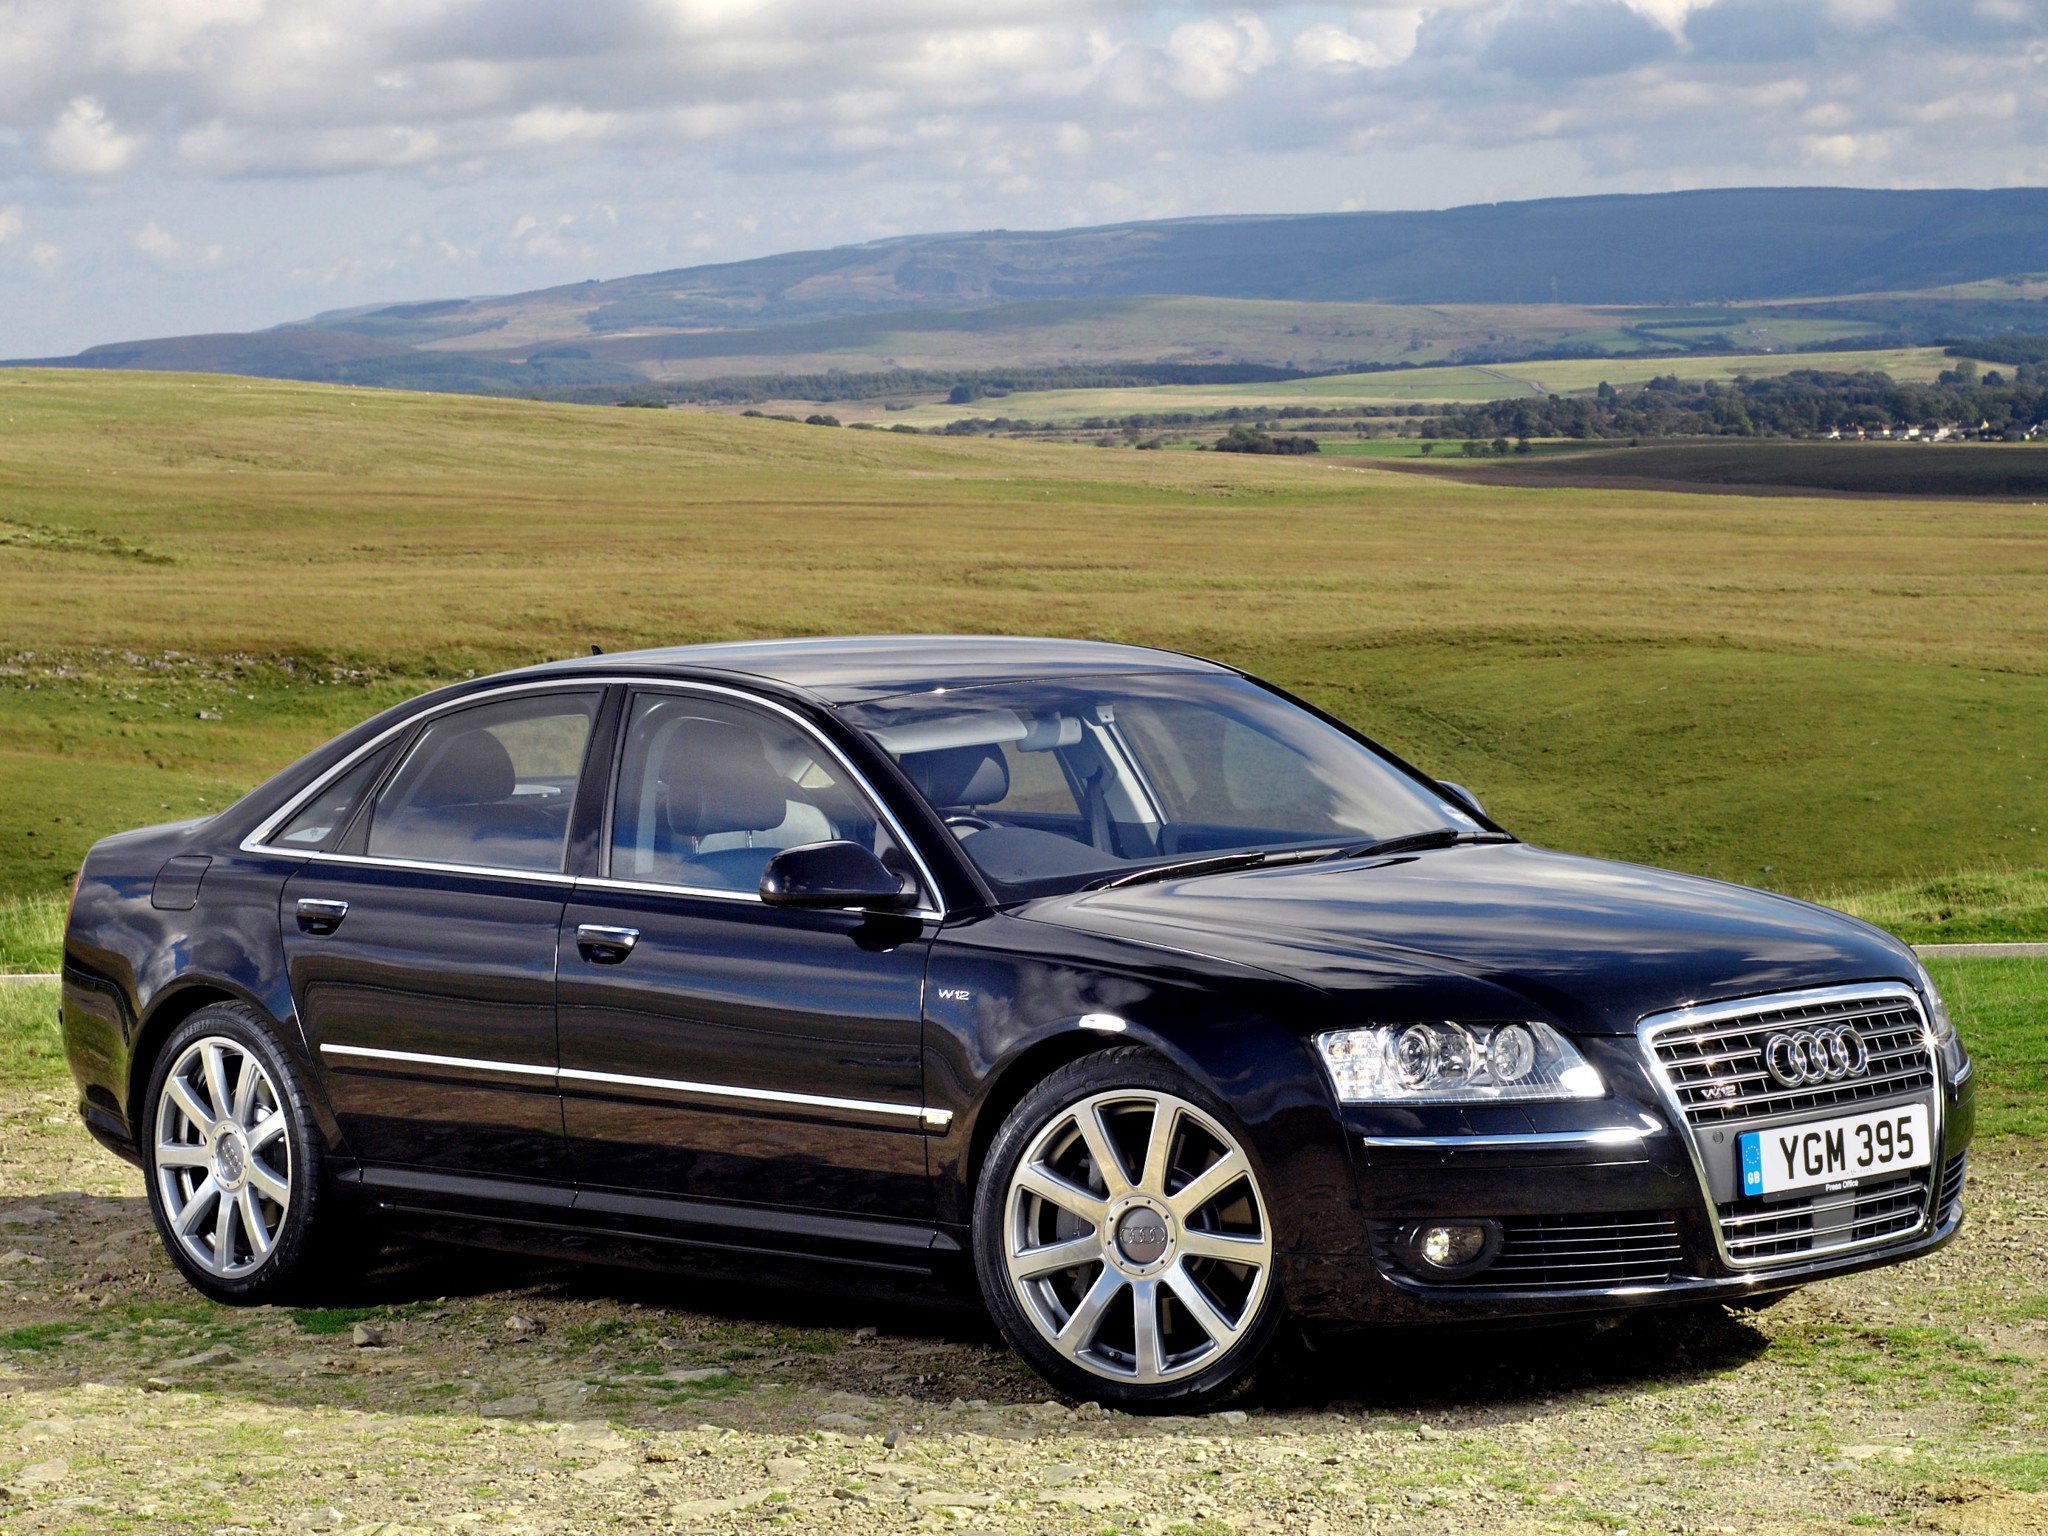 download Audi A8 D3f Cool Cars Wallpaper [2048x1536] for your 2048x1536